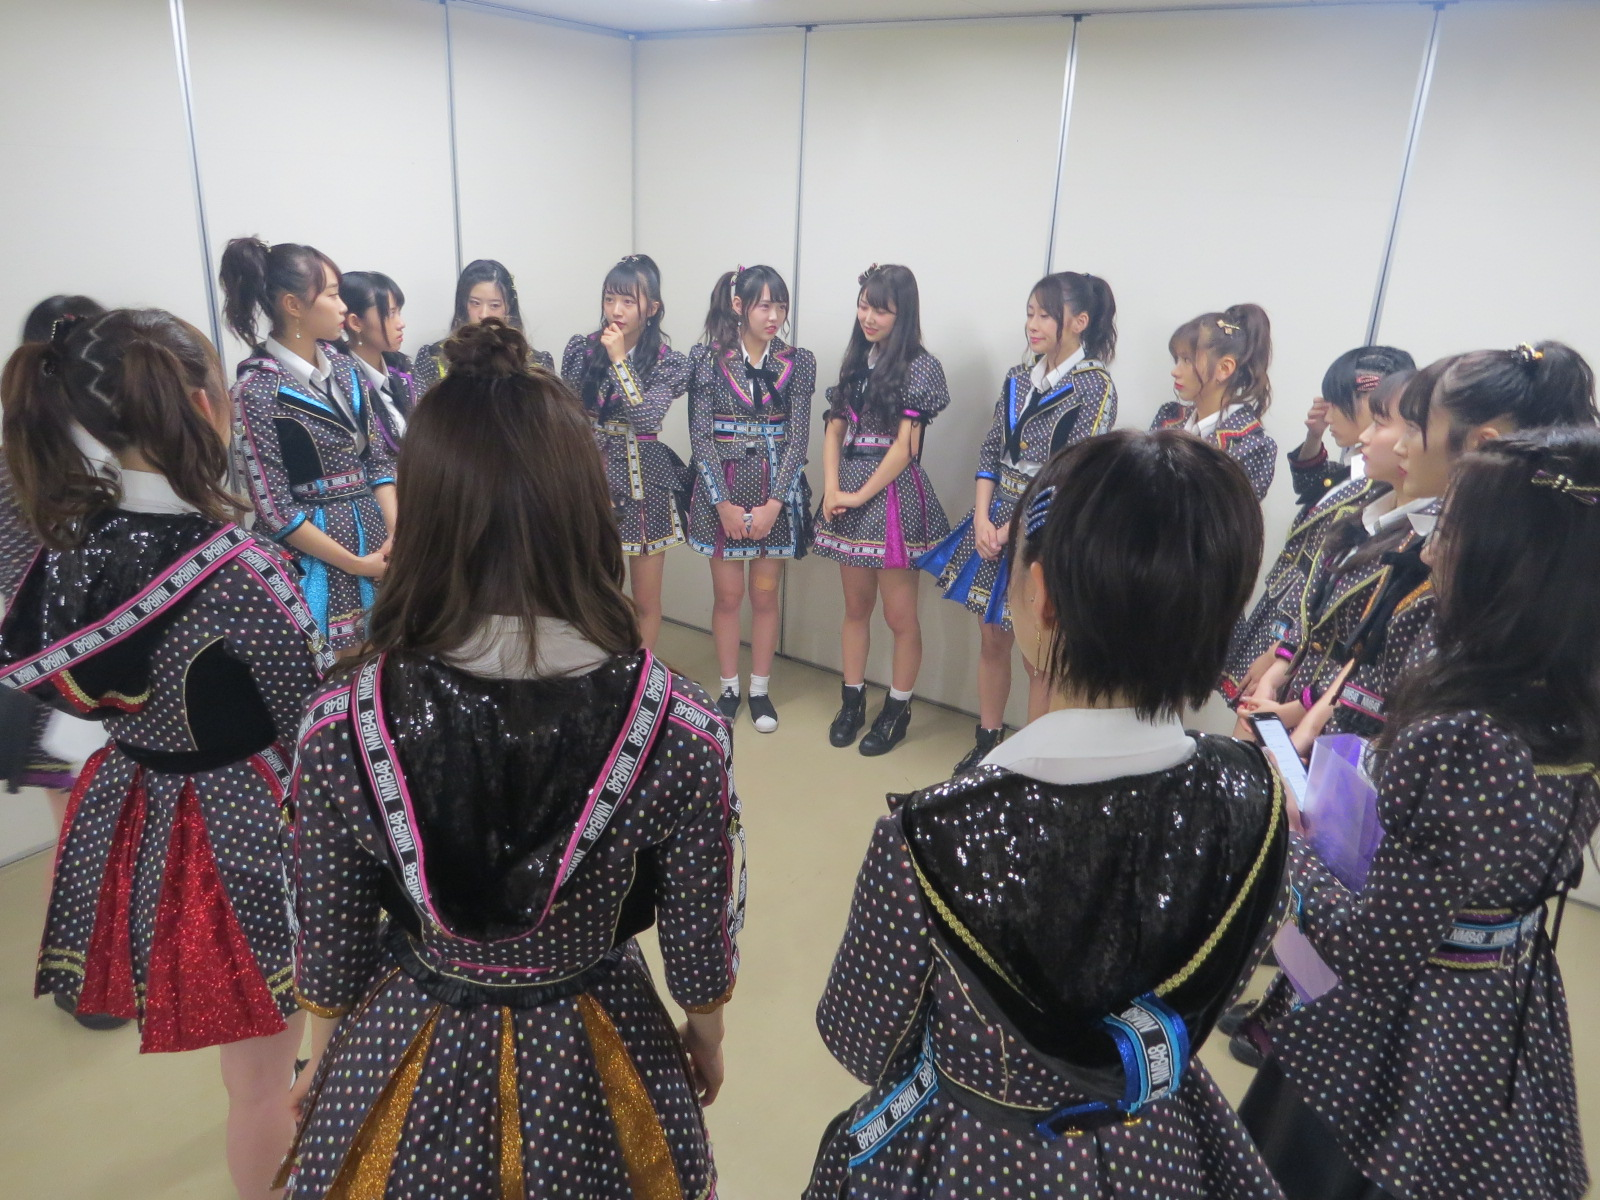 NMB48 LIVE TOUR 2018 in Summer・石川公演の画像-221